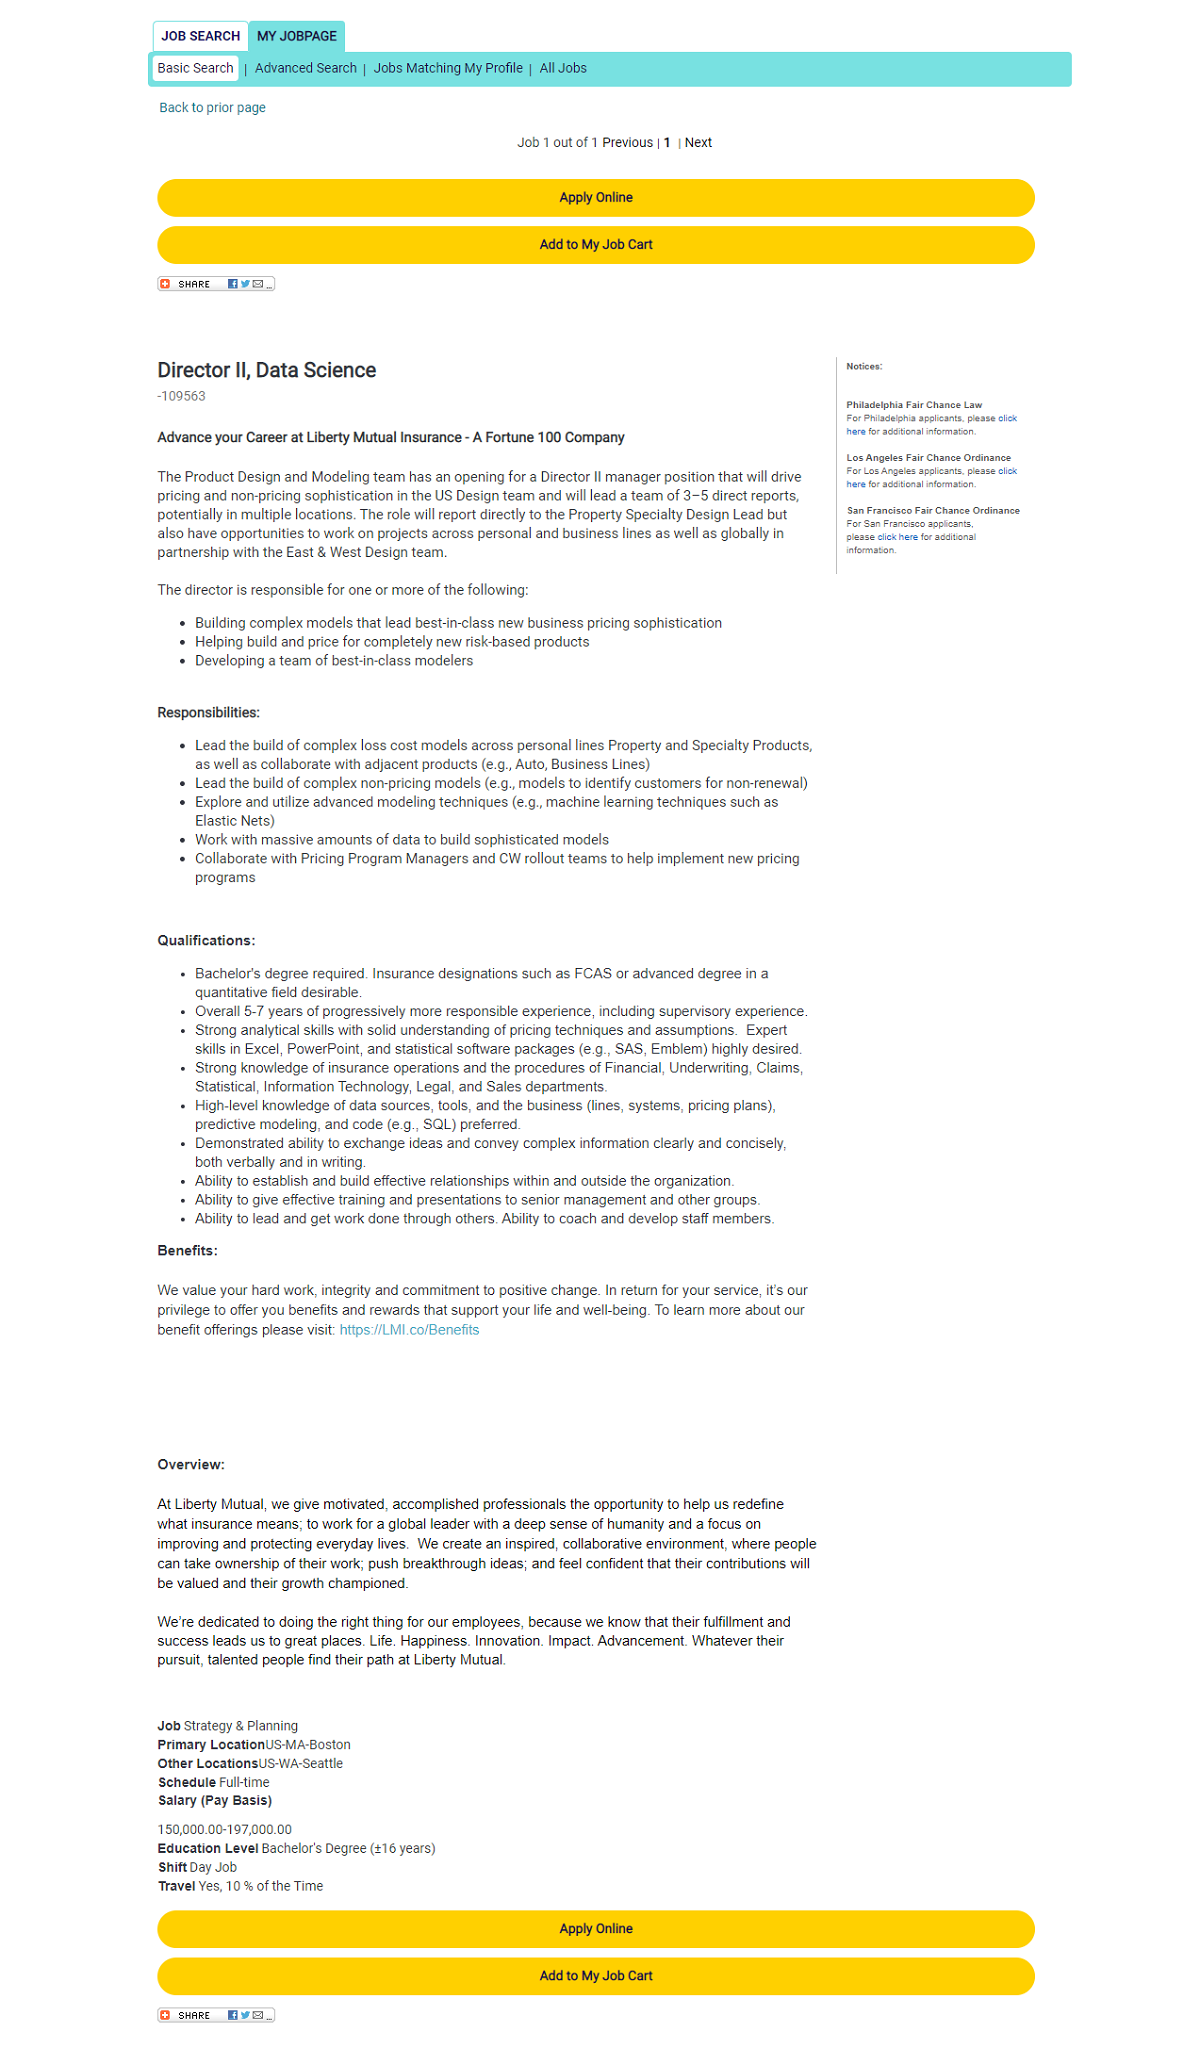 Liberty Mutual Taleo Job Description Page Before